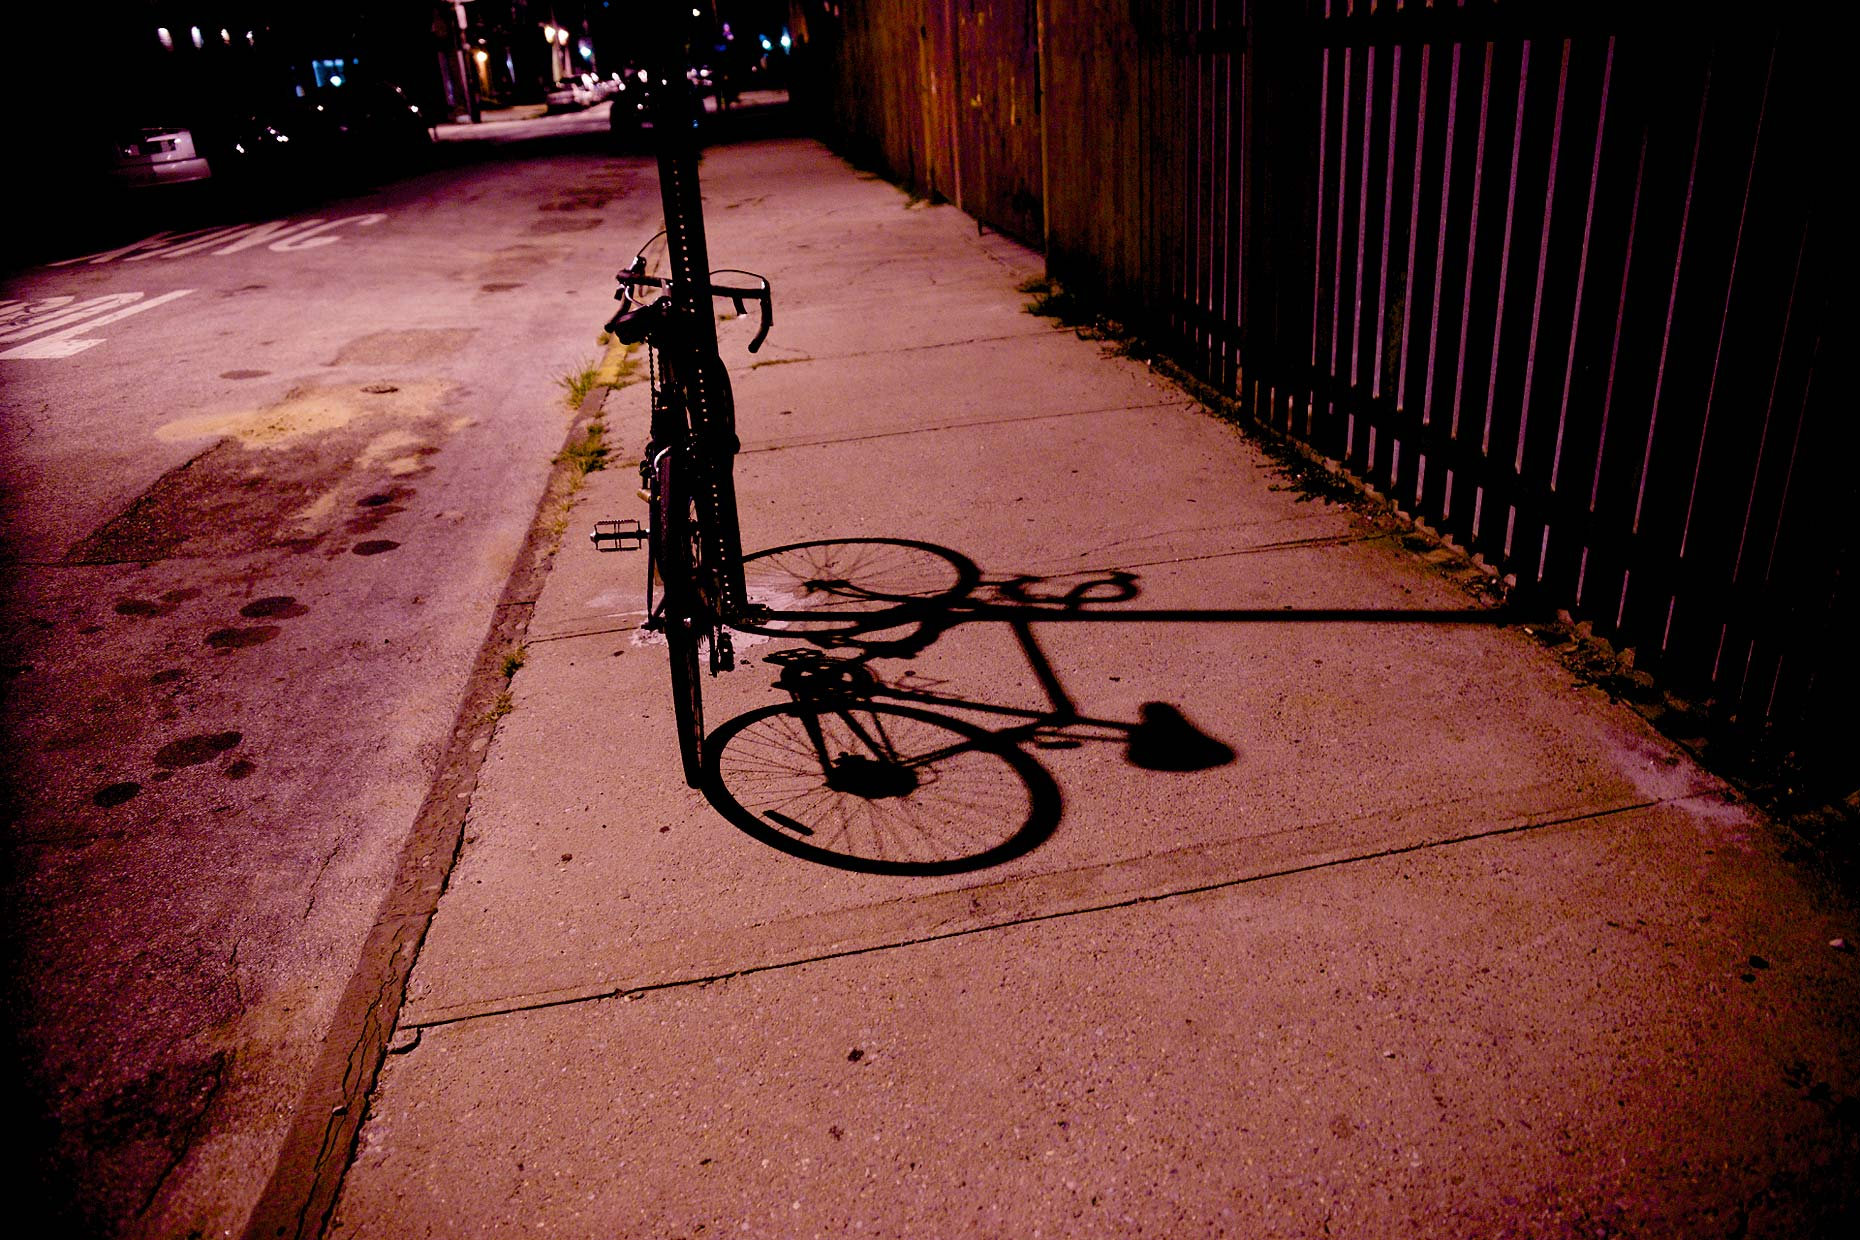 Bike leaning on post on Red Hook Brooklyn street late at night casting shadow